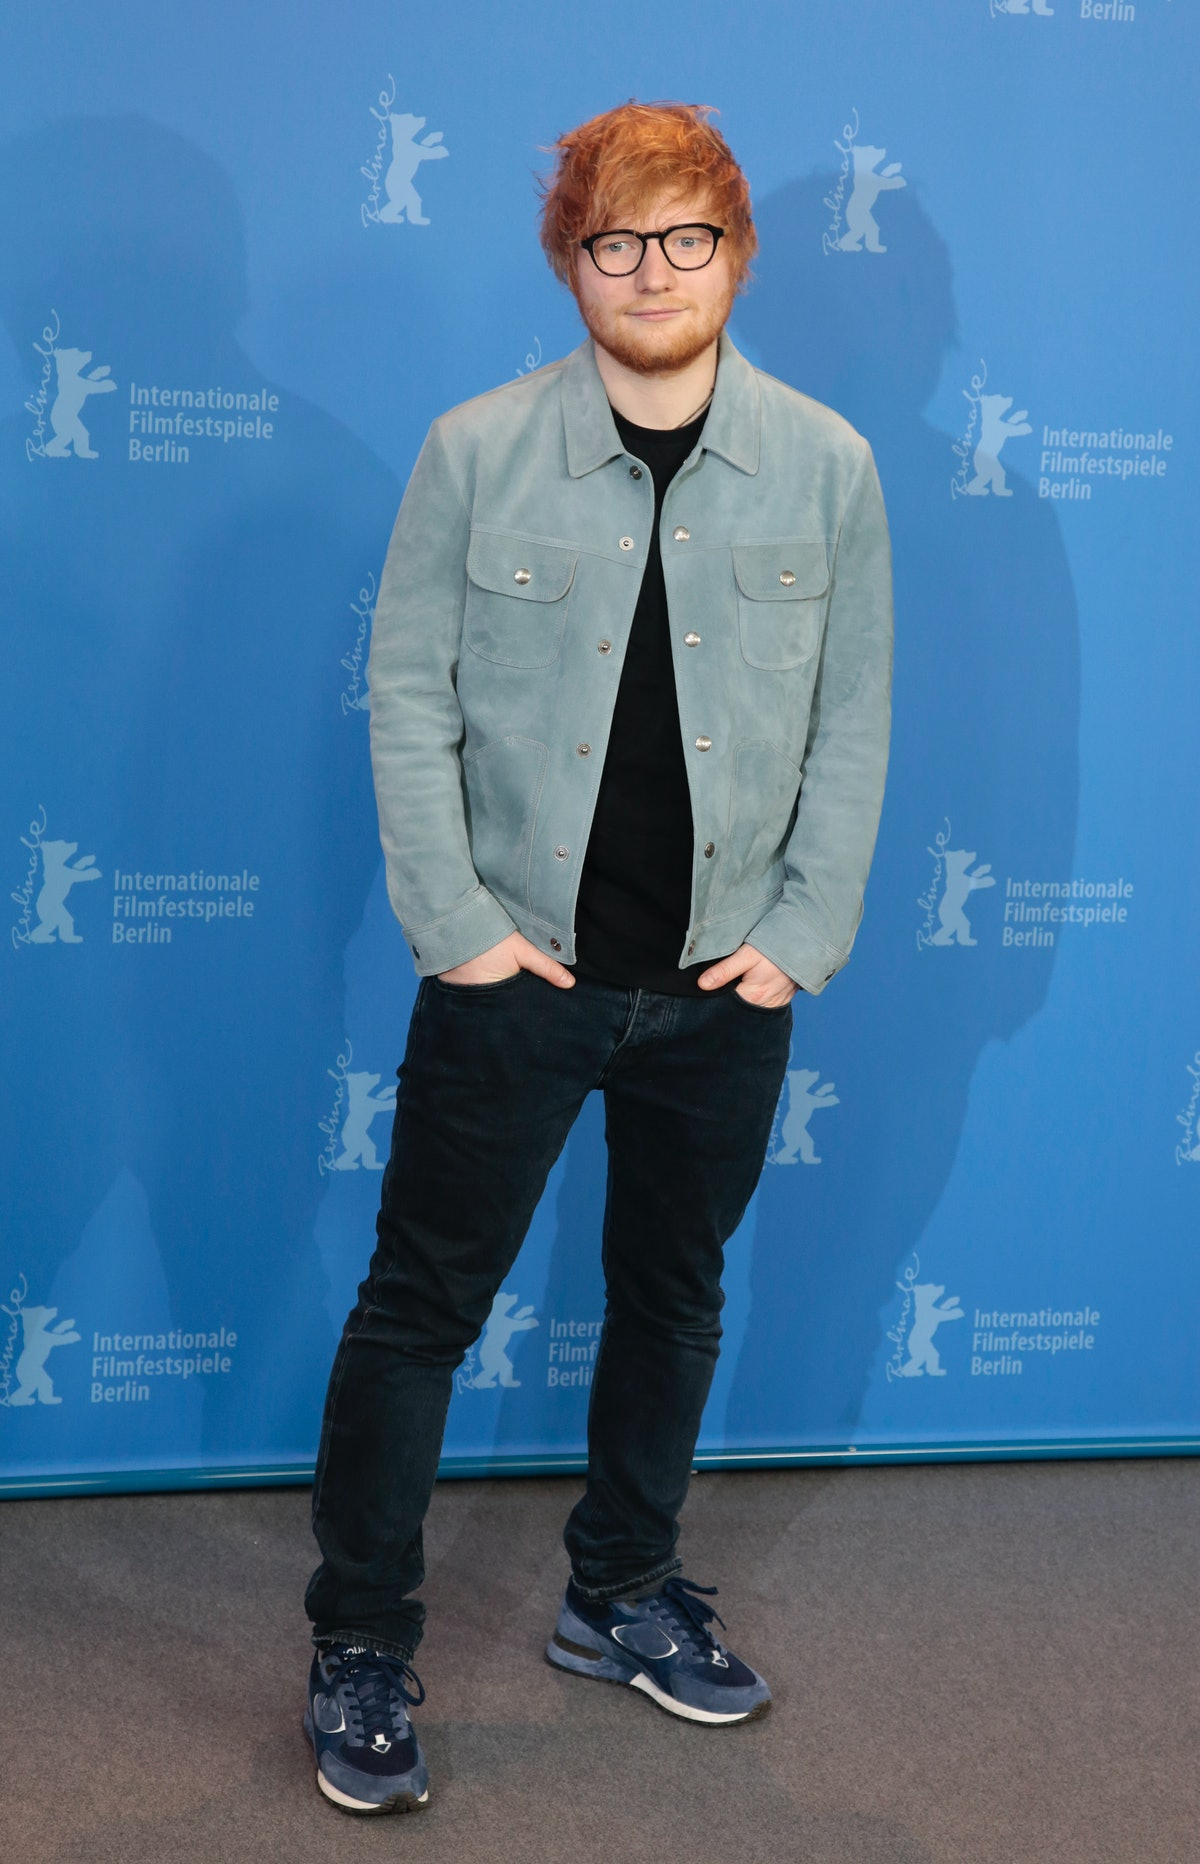 BERLIN, GERMANY - FEBRUARY 23: Singer Ed Sheeran poses at the 'Songwriter' photo call during the 68th Berlinale International Film Festival Berlin on February 23, 2018 in Berlin, Germany. (Photo by Patrick AVENTURIER/Gamma-Rapho via Getty Images)